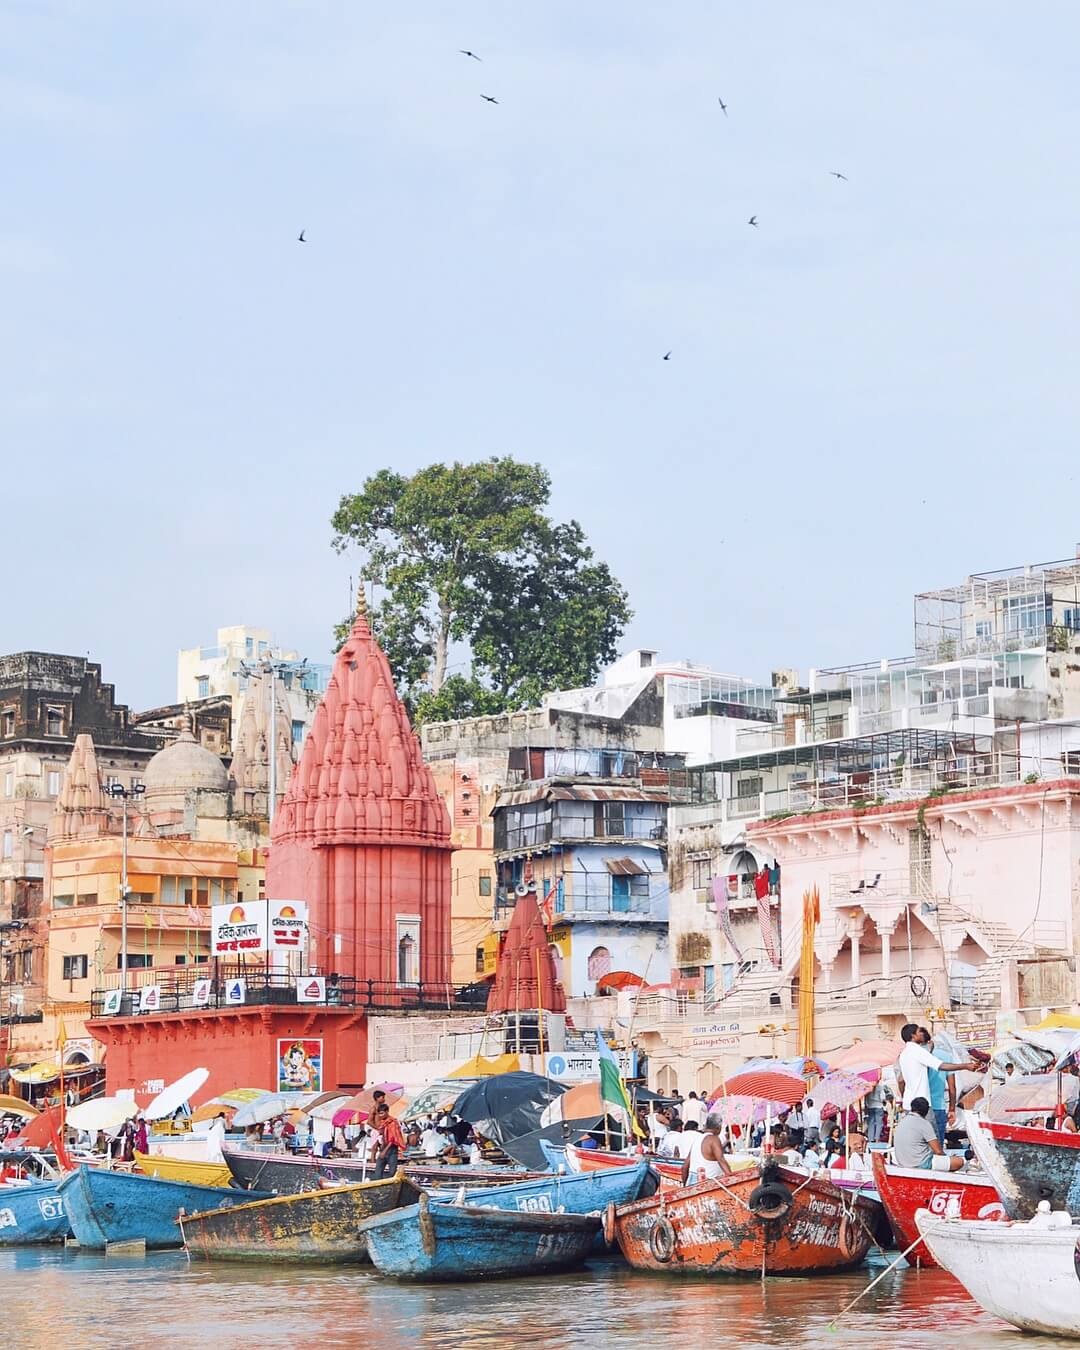 Colourful buildings on a river bank, with bright boats and lots of people on the river - India